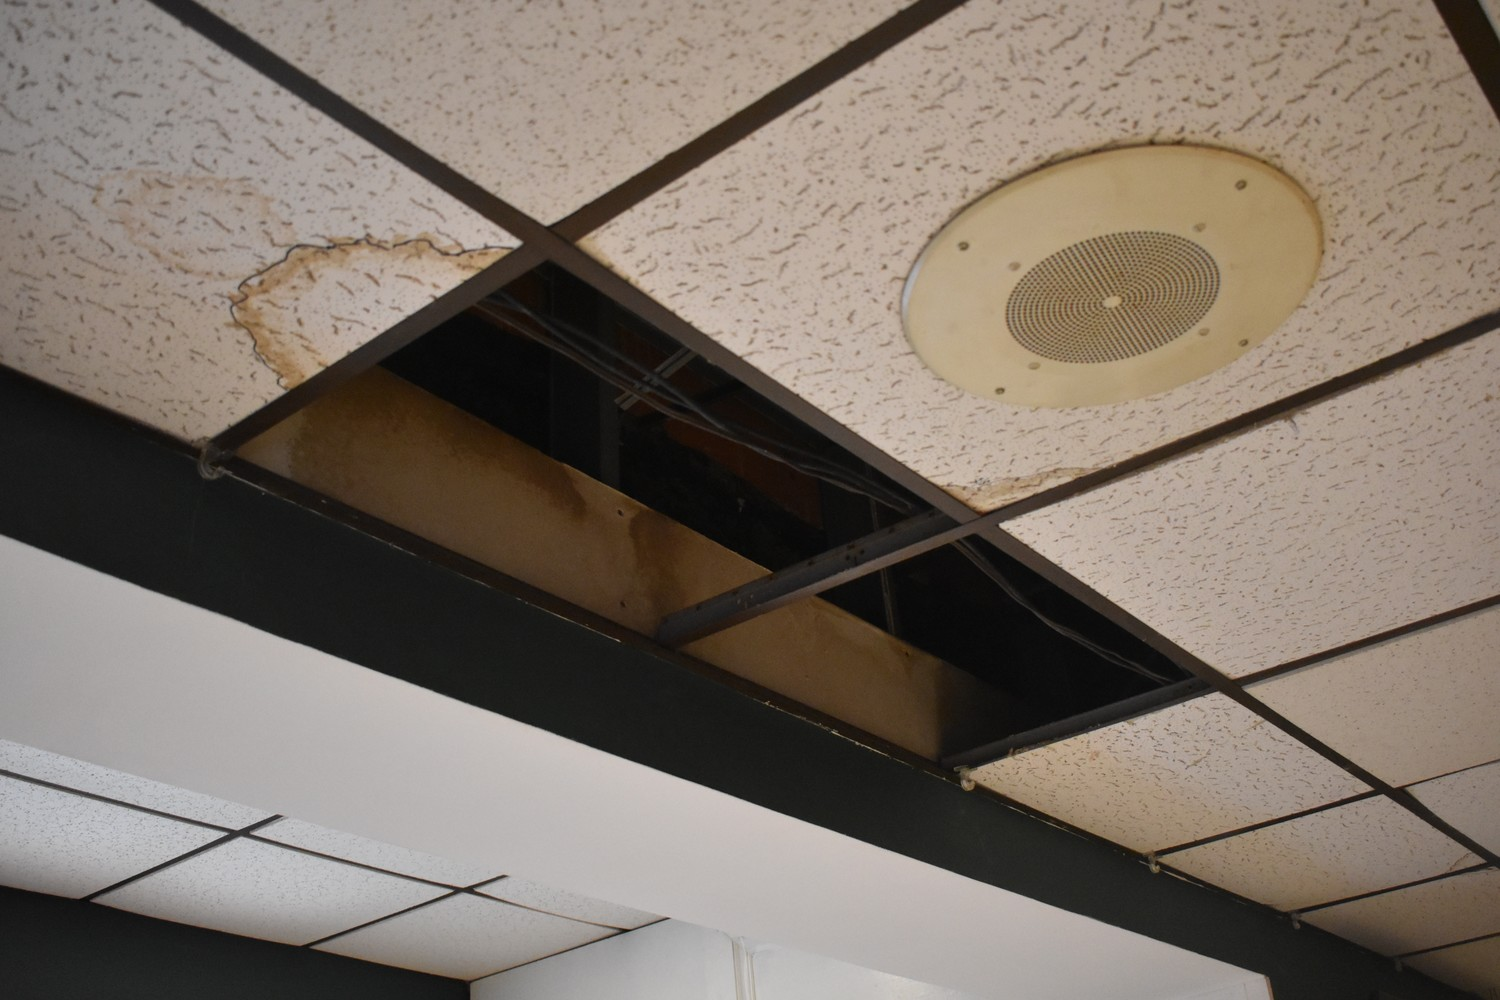 Ceiling panels are missing.